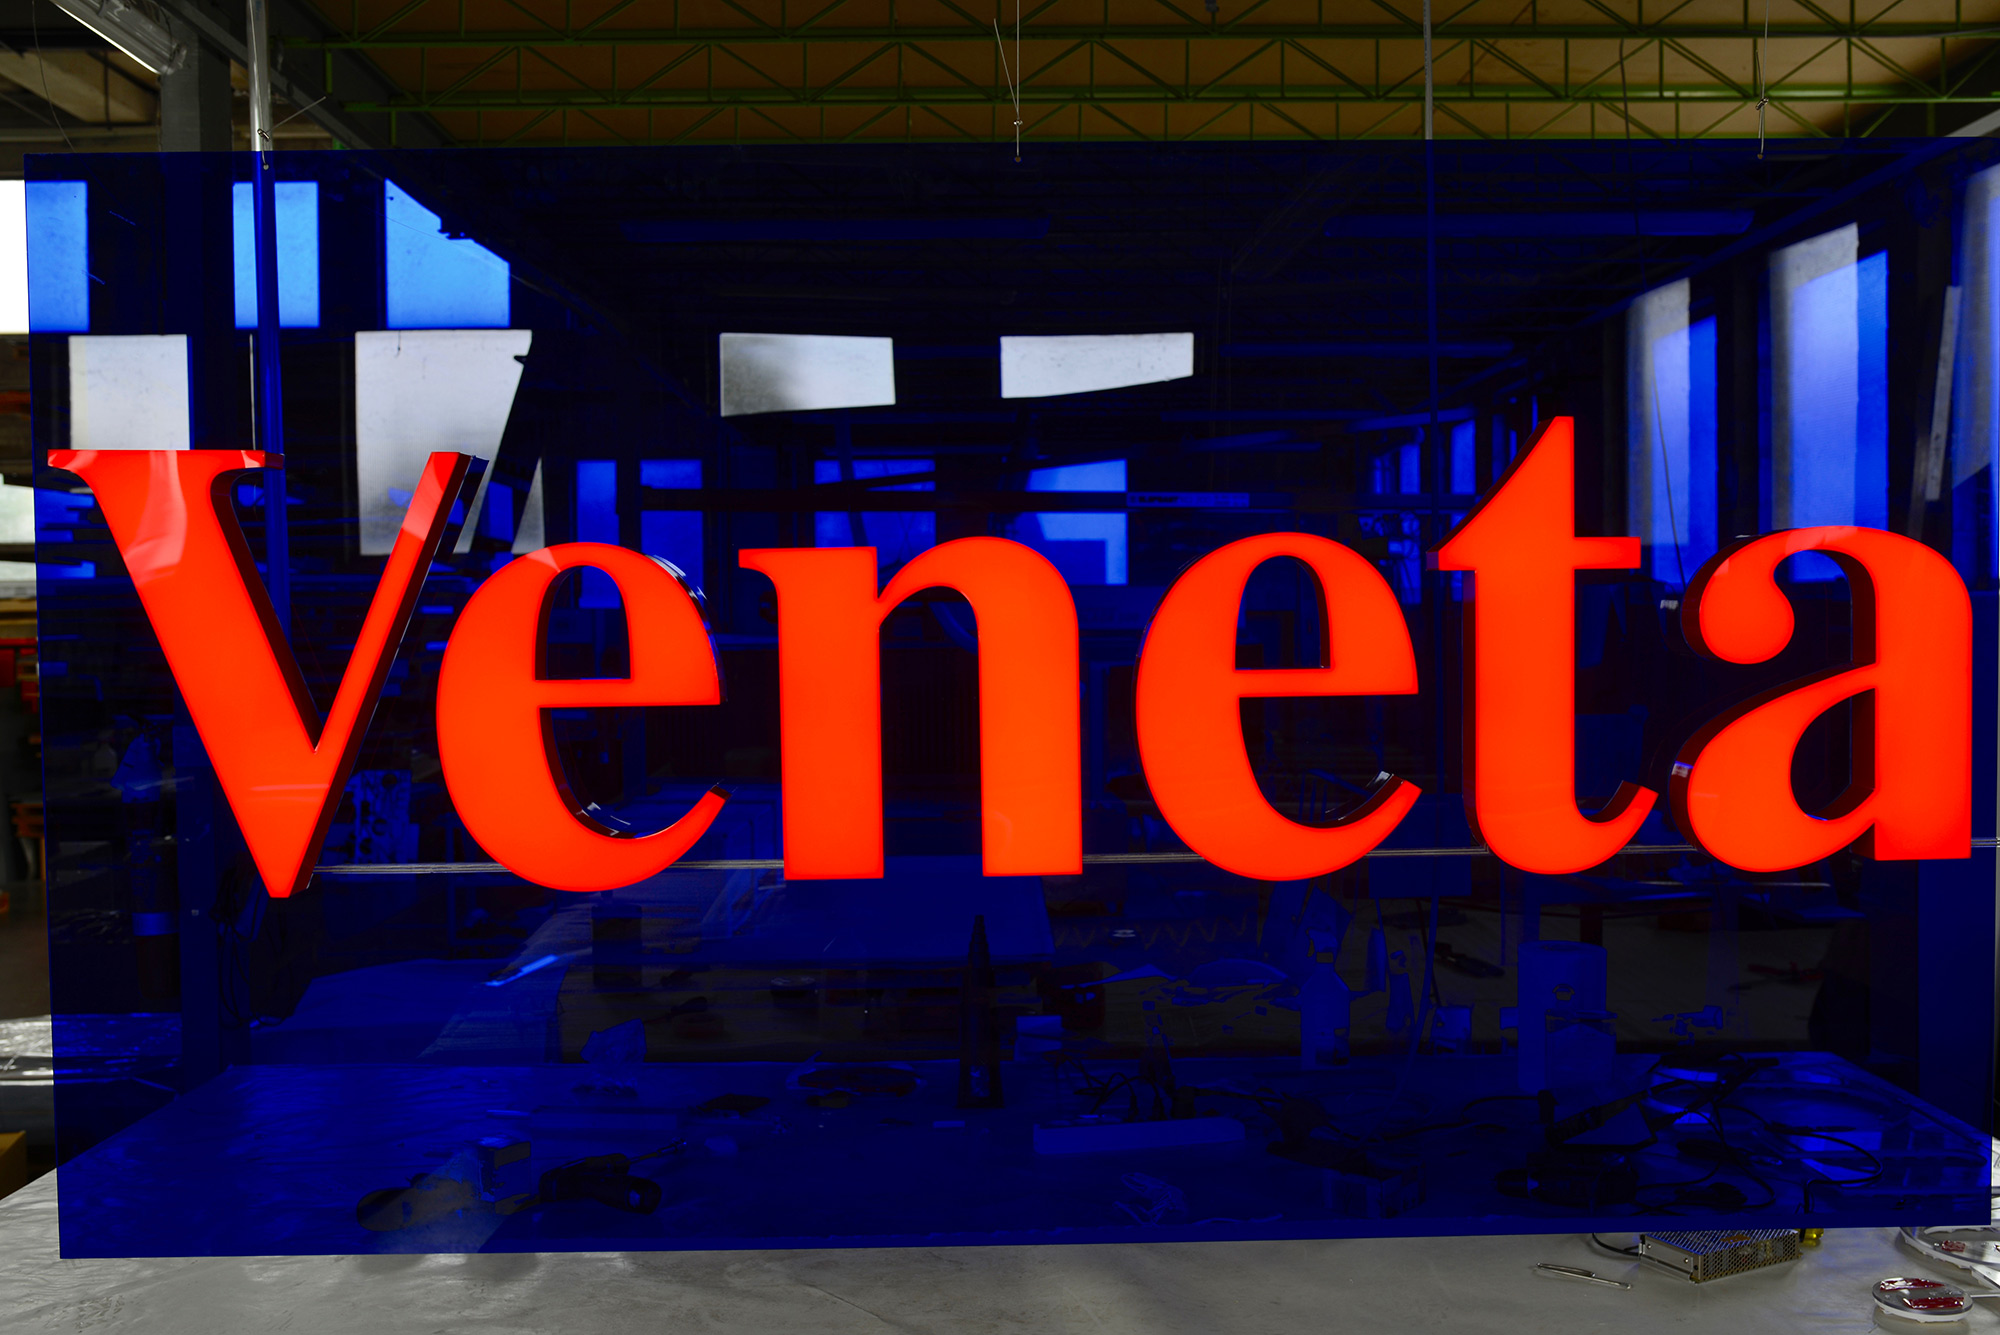 Modular luminous writings for showcases and surfaces - Simplex Srl Italy